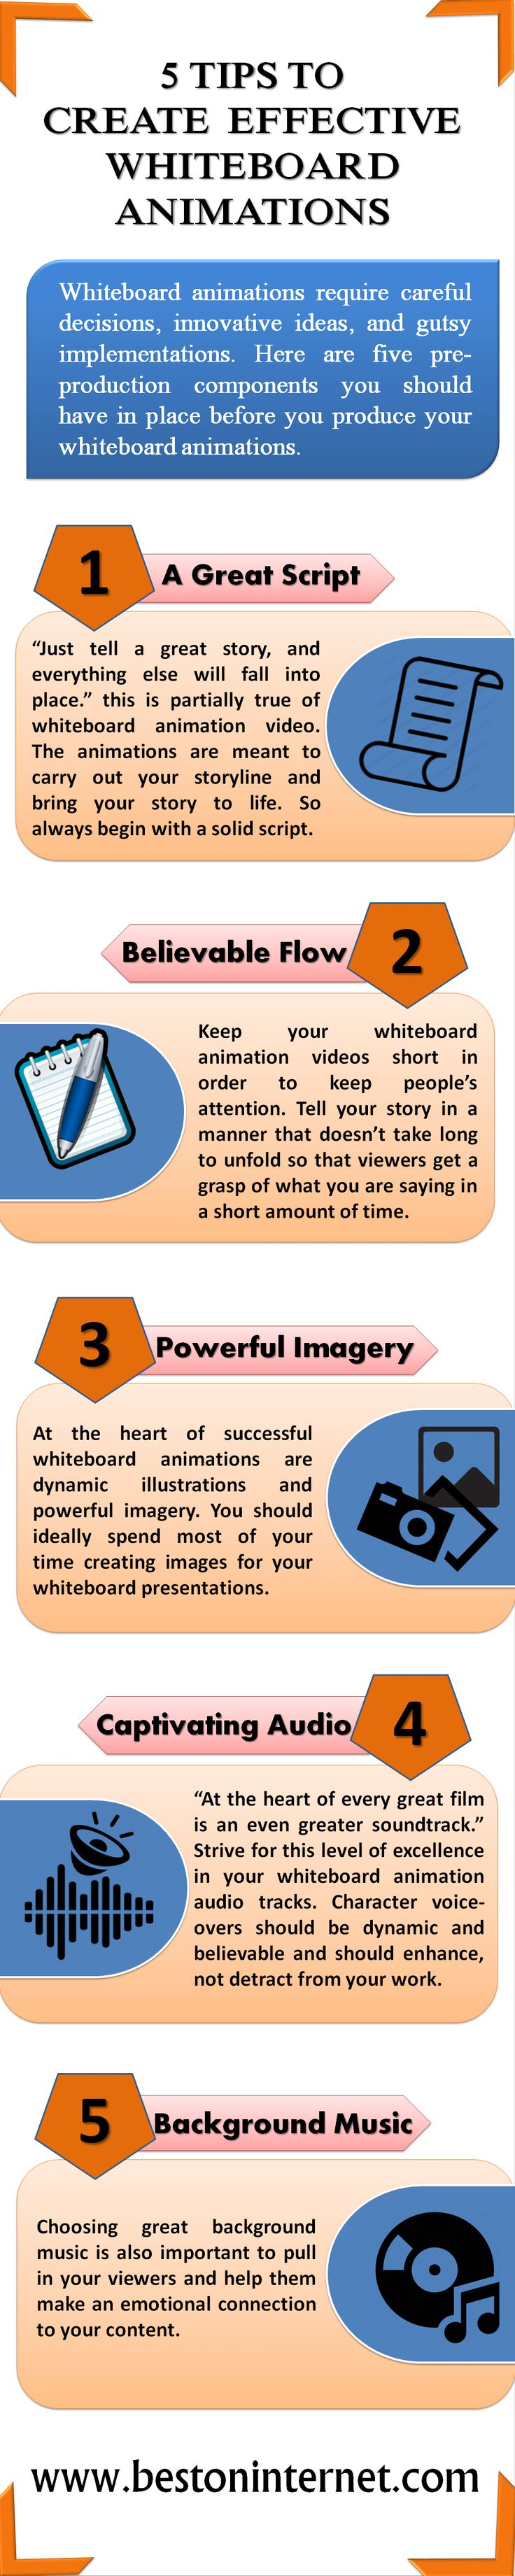 Whiteboard animations require careful decisions, innovative ideas, and gutsy implementations. Here are five pre-production components you should have in place before you produce your whiteboard animations. http://www.bestoninternet.com/money/internet-marketing/whiteboard-animation-software/